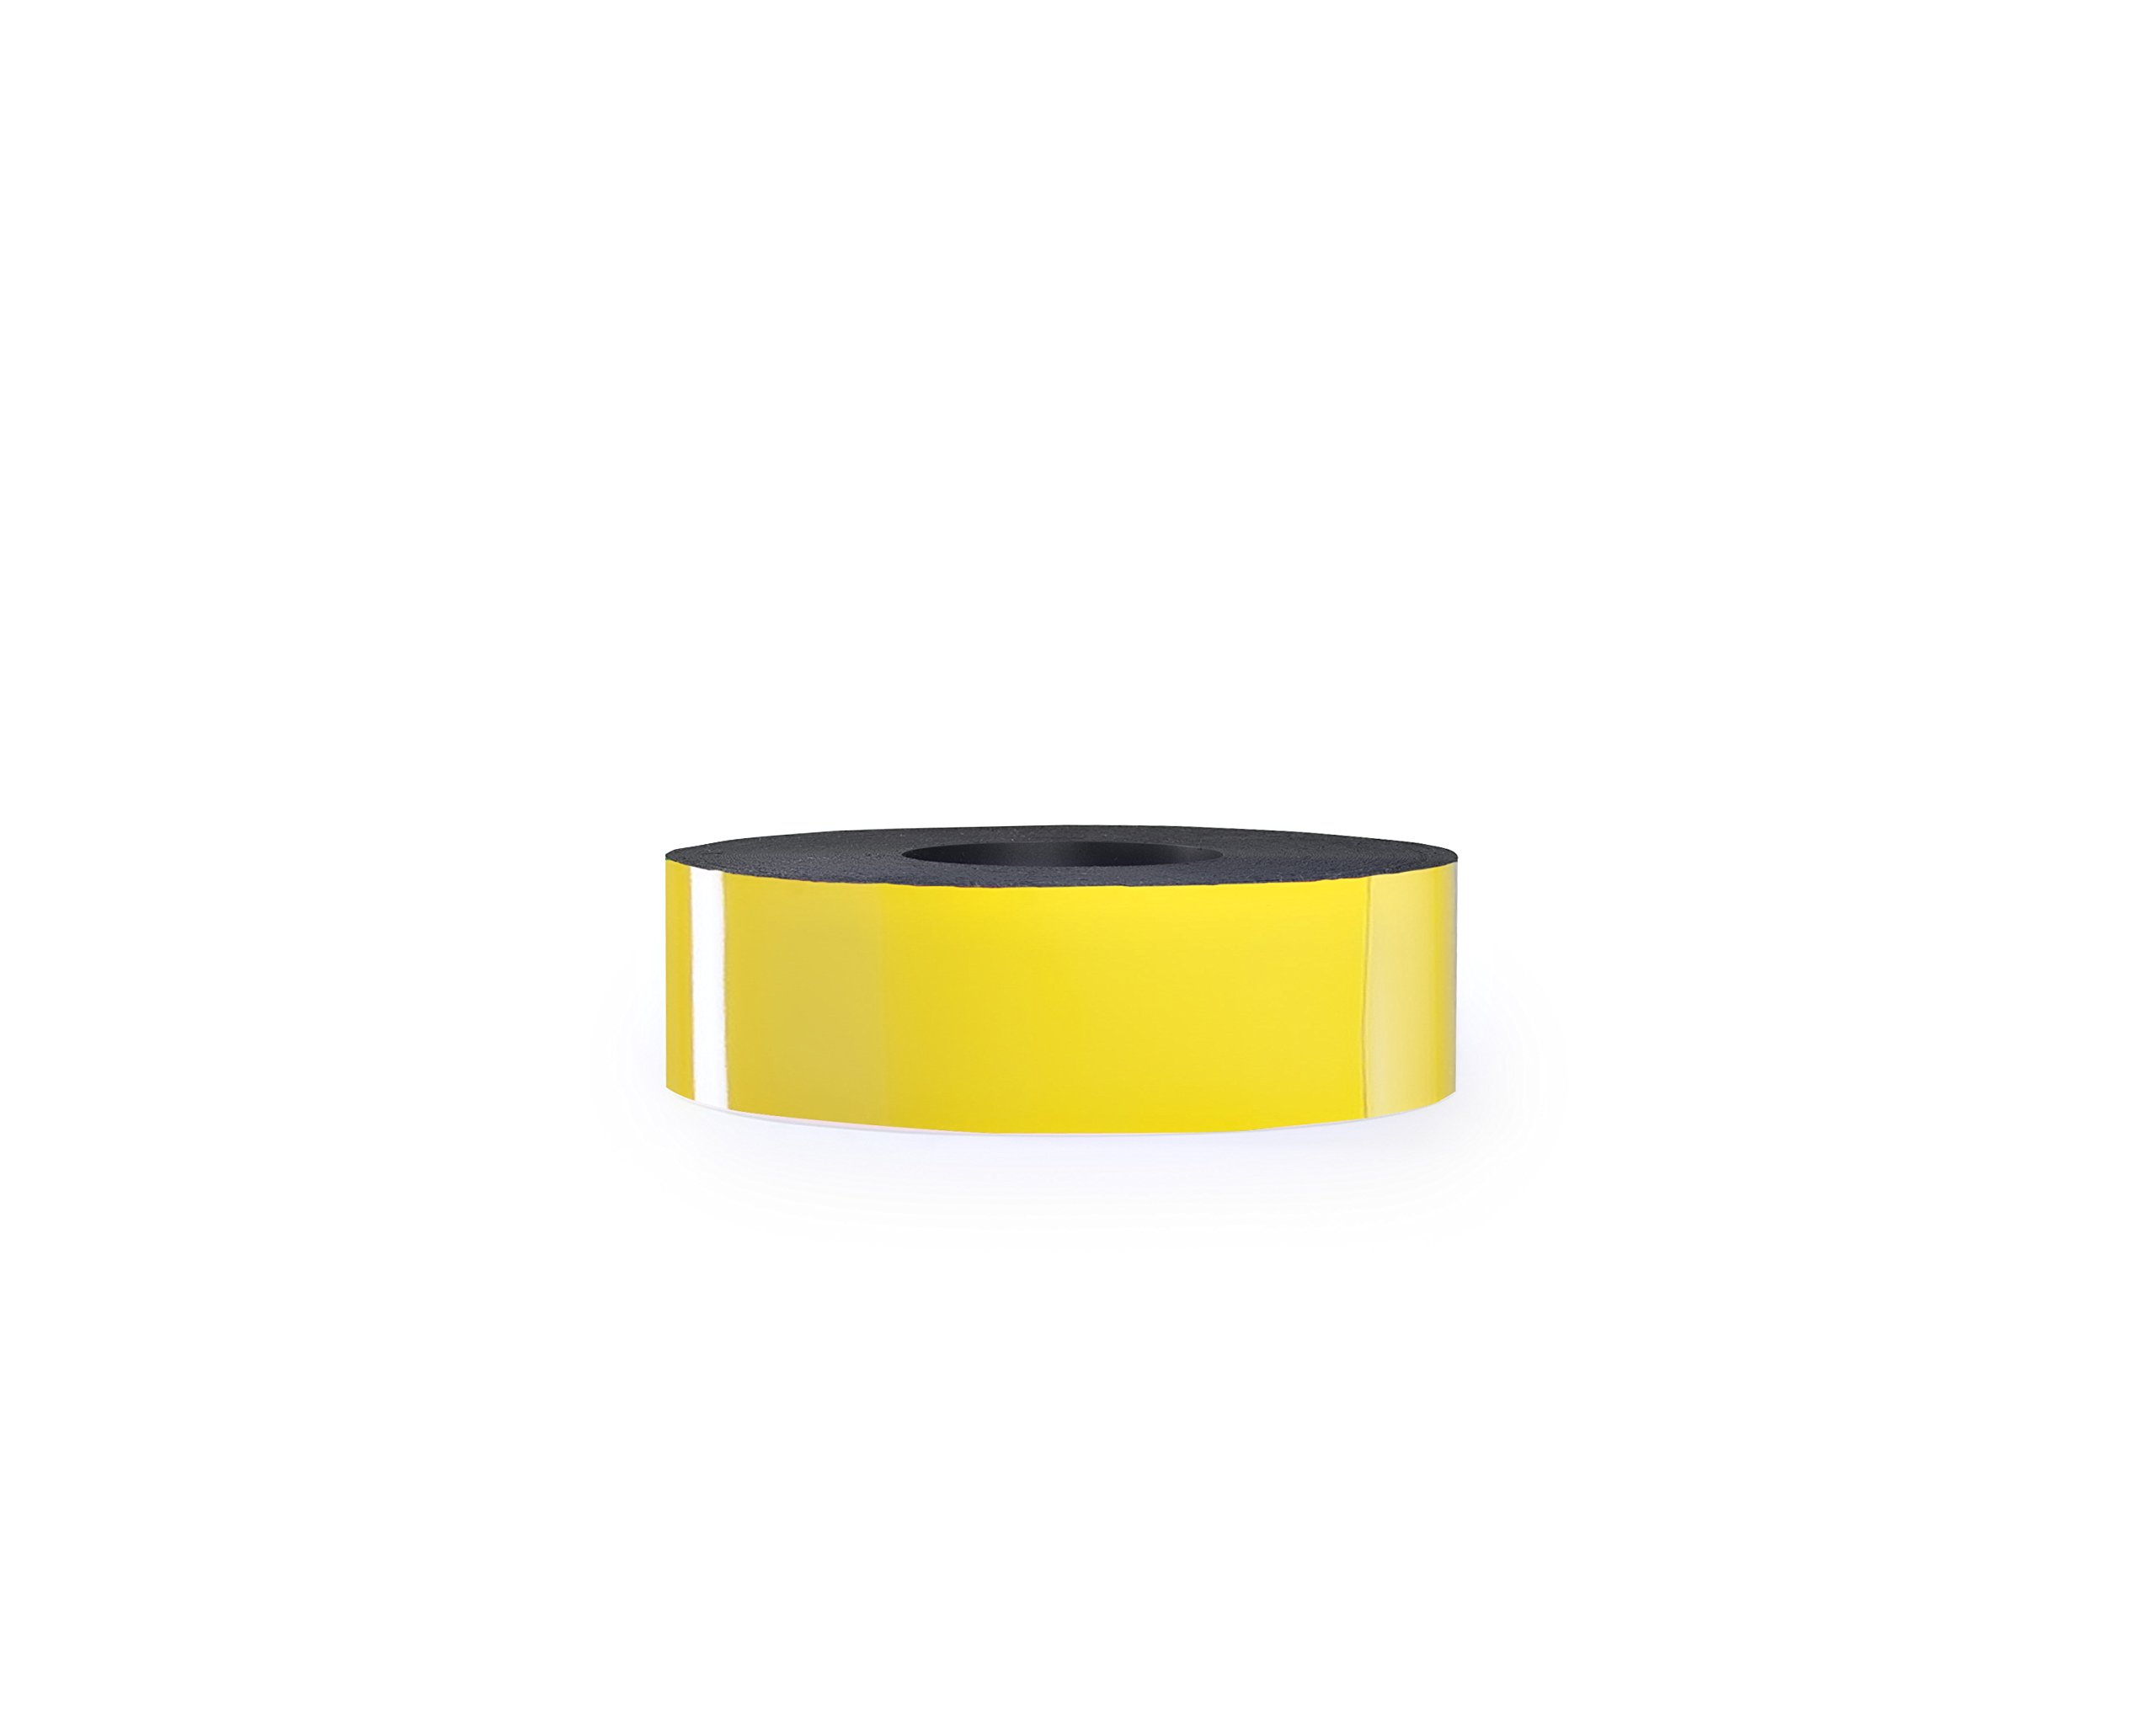 30 Mil Dry Erase Magnetic Strip Roll - Yellow - 2'' X 25' by Discount Magnet